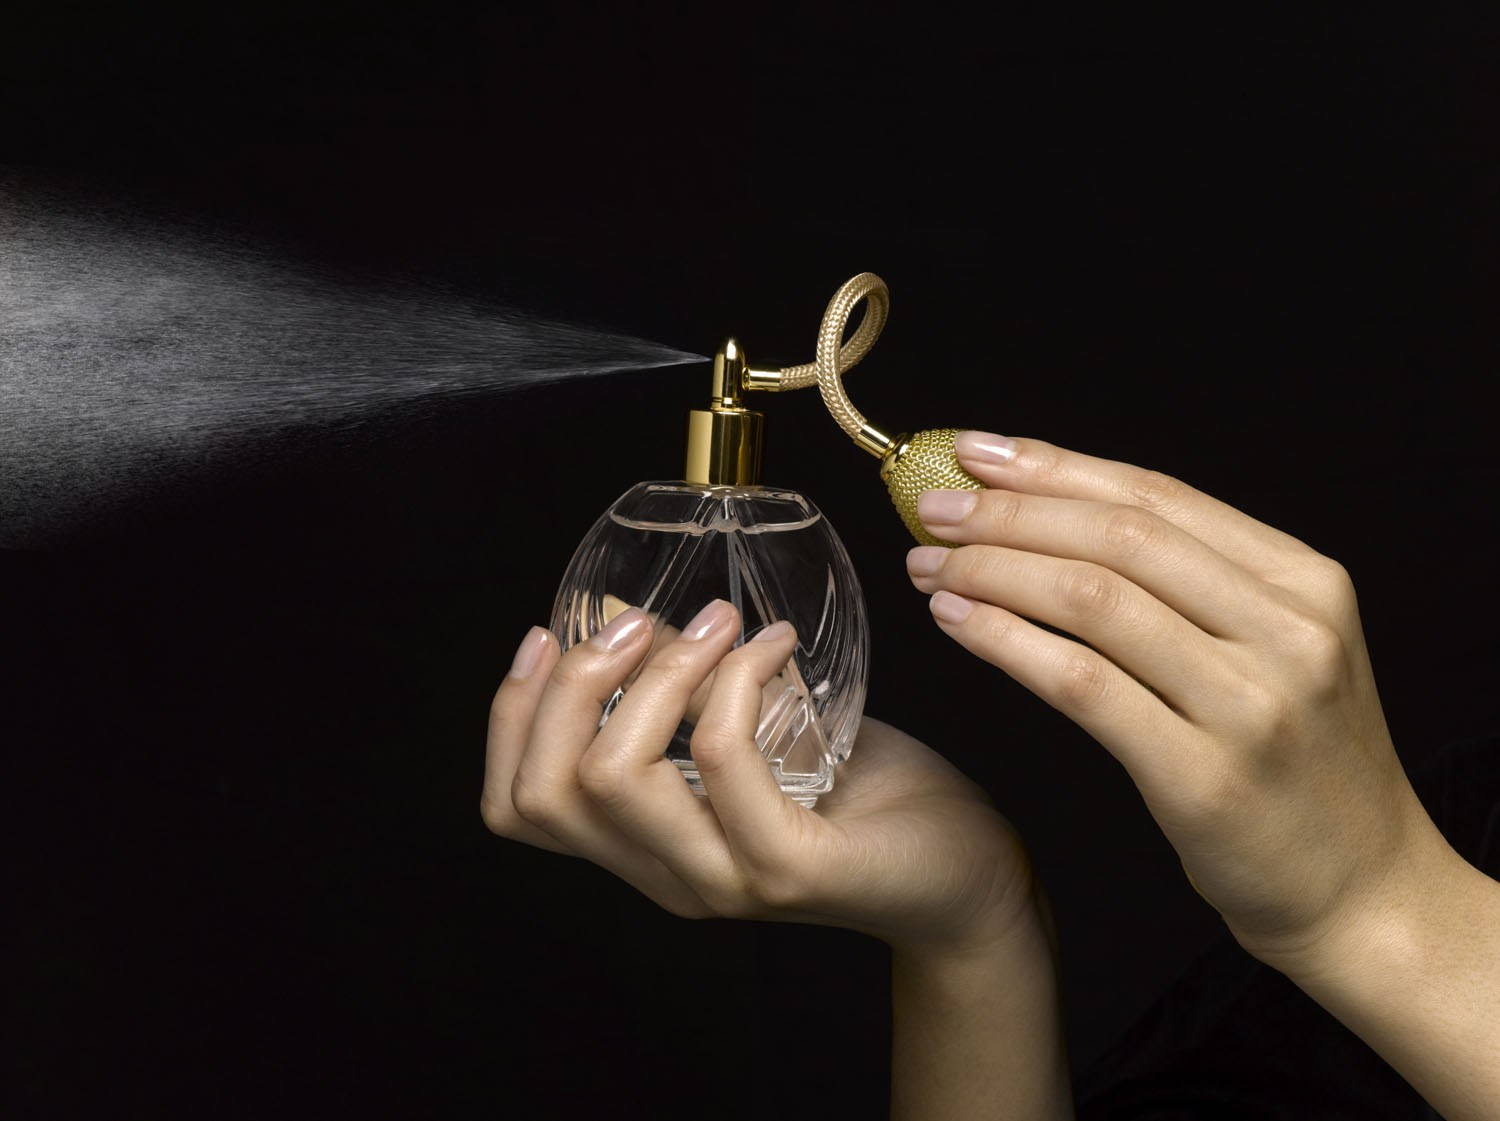 Woman spraying perfume with perfume atomizer, close-up of hands